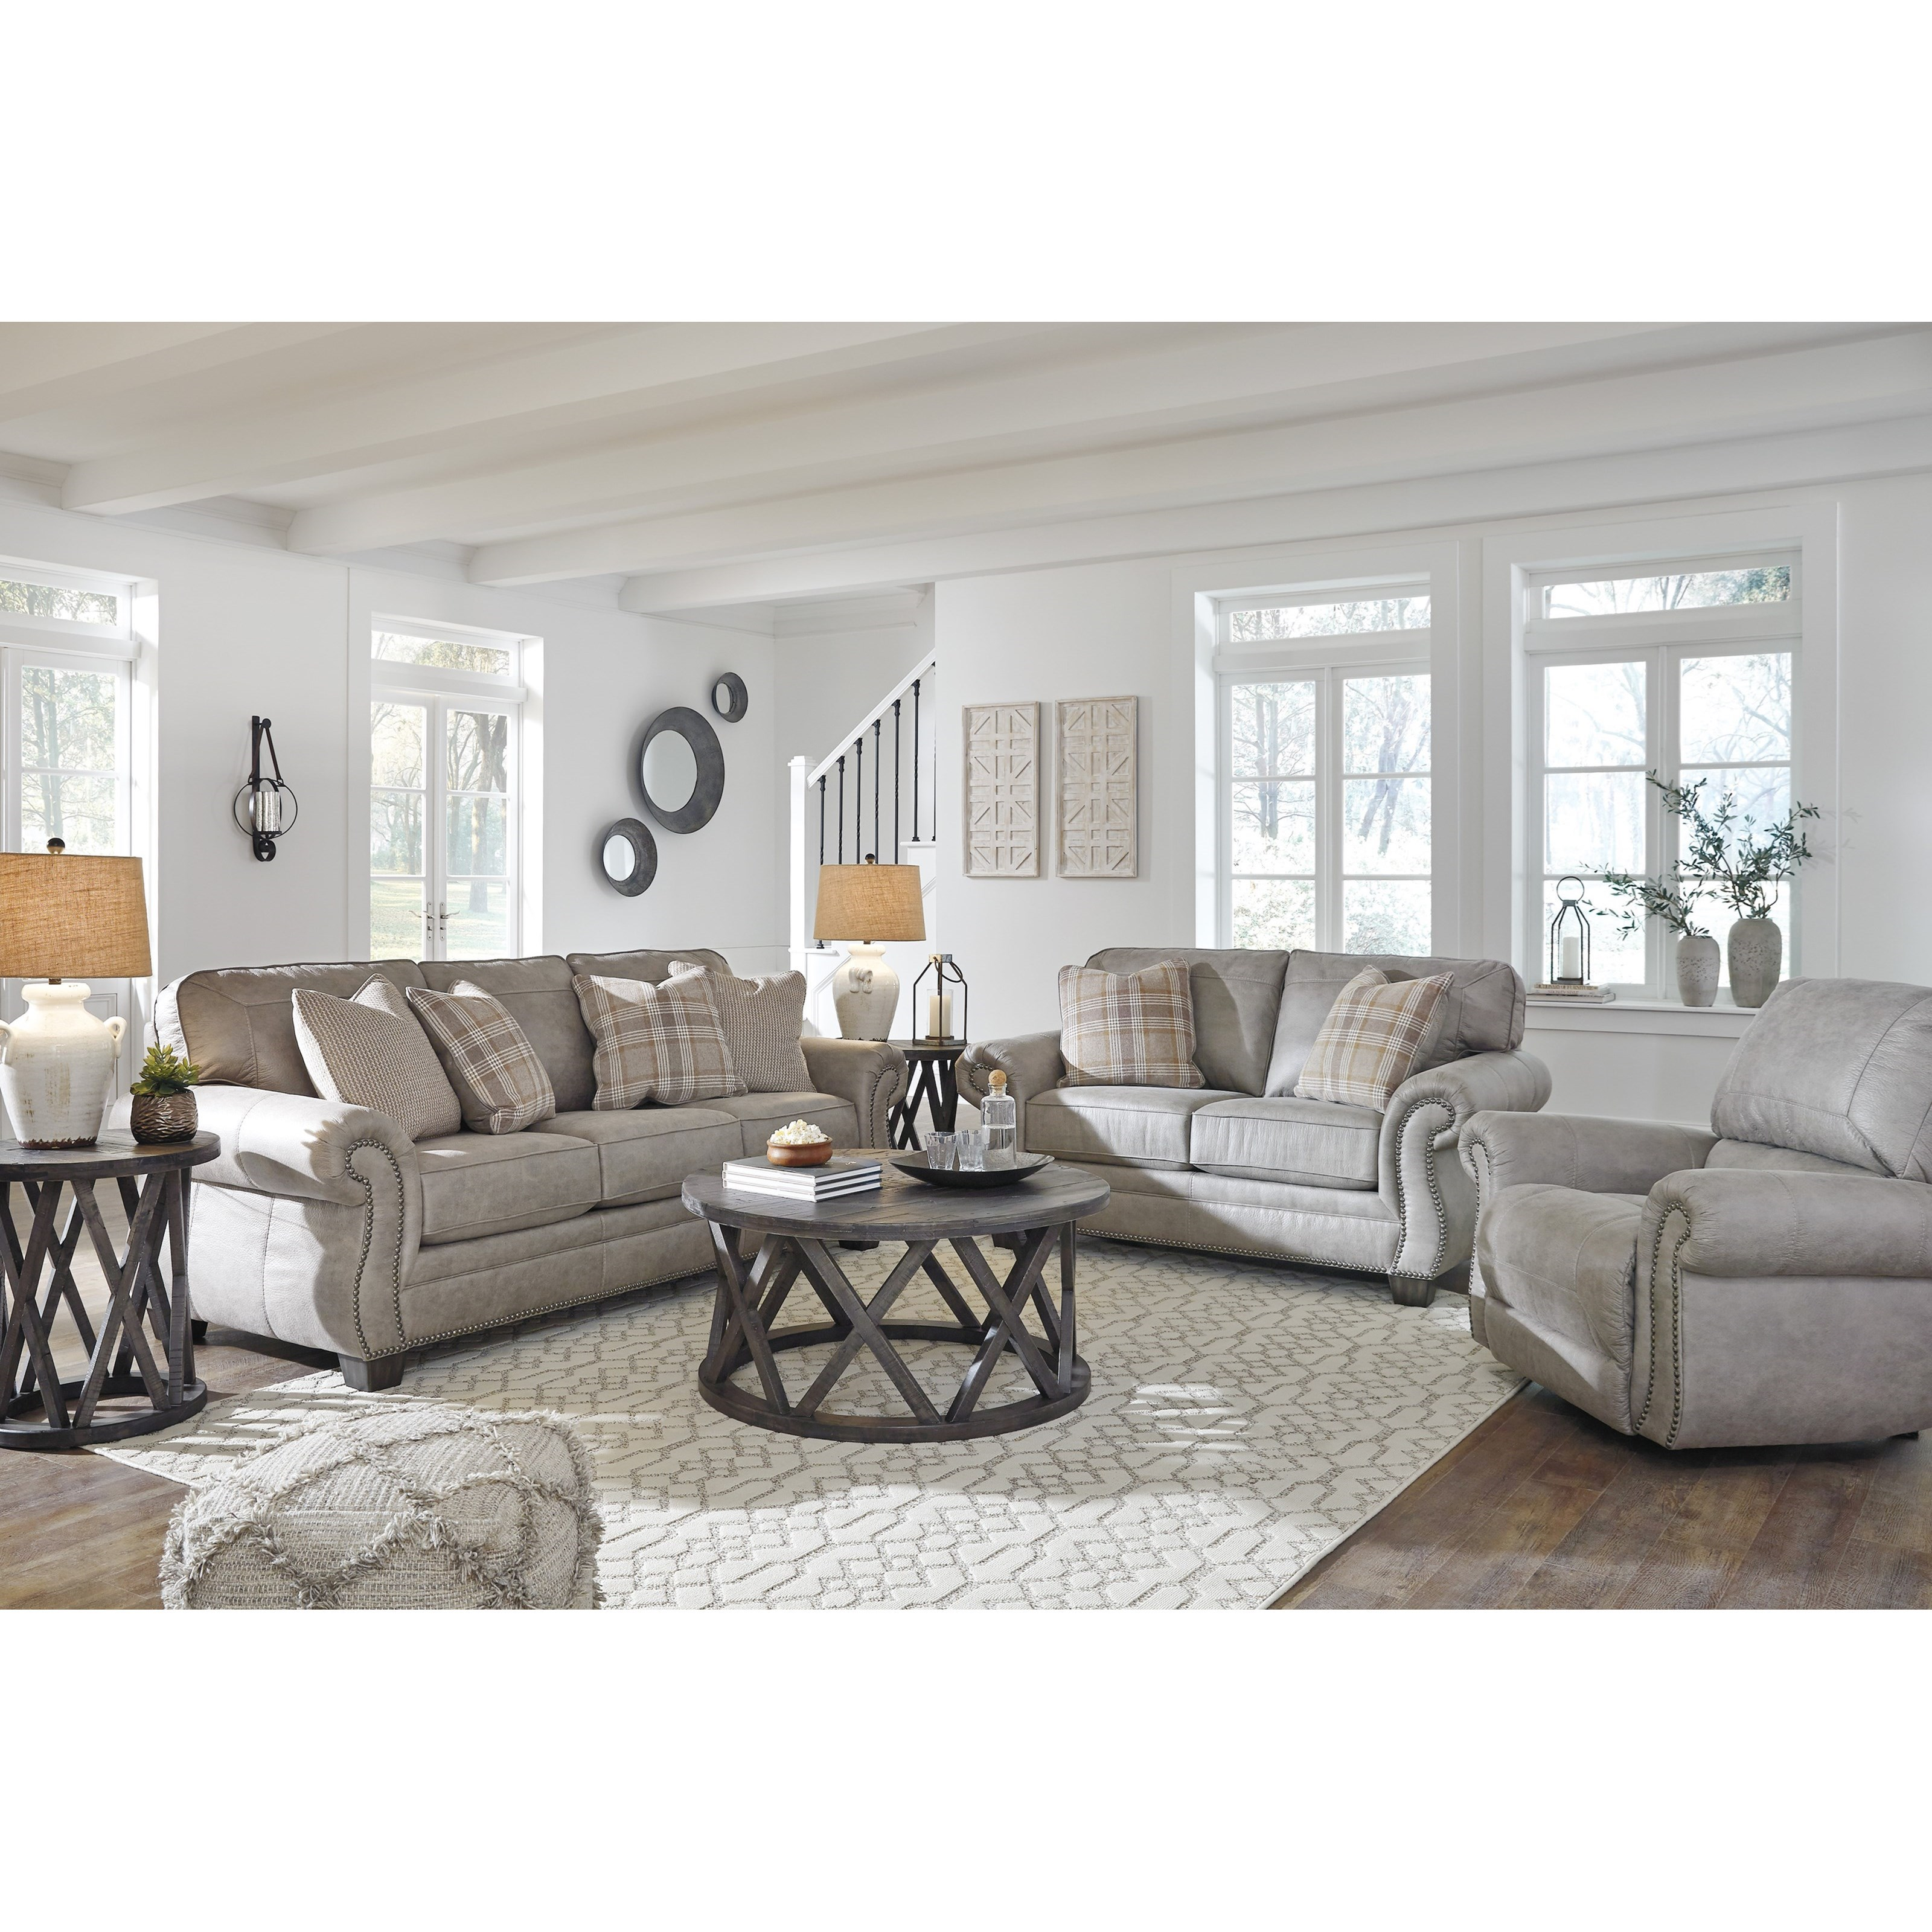 Olsberg Stationary Living Room Group by Signature Design by Ashley at Furniture Barn